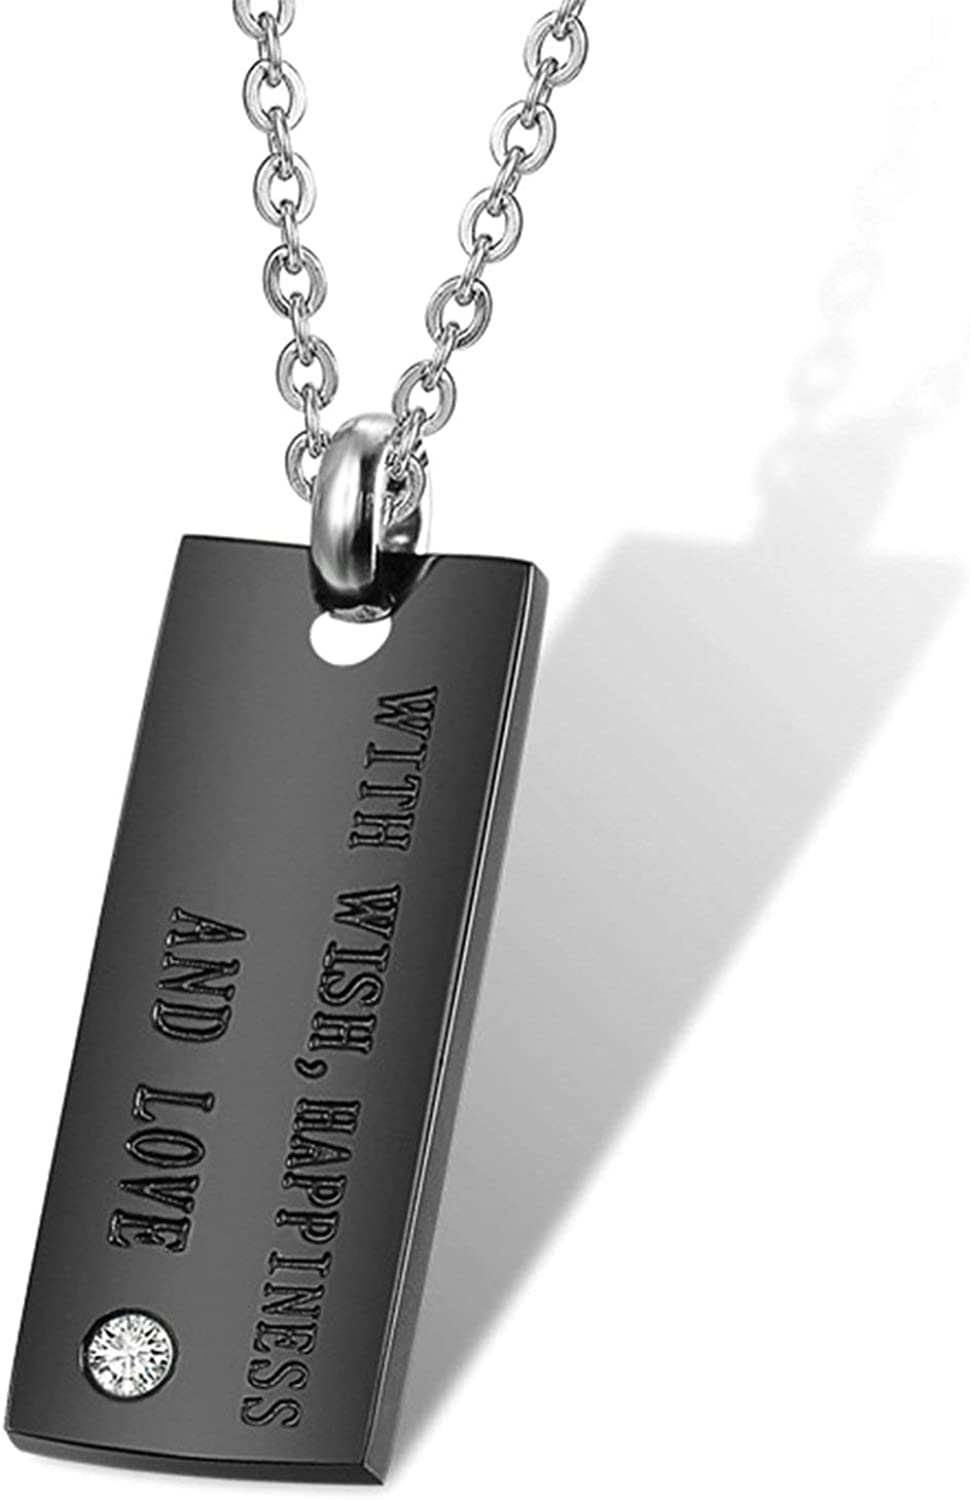 Happiness and Love MoAndy Necklace for Couple Titanium Steel Pendant Necklaces Cz Rectangle Bar Engrave with Wishes